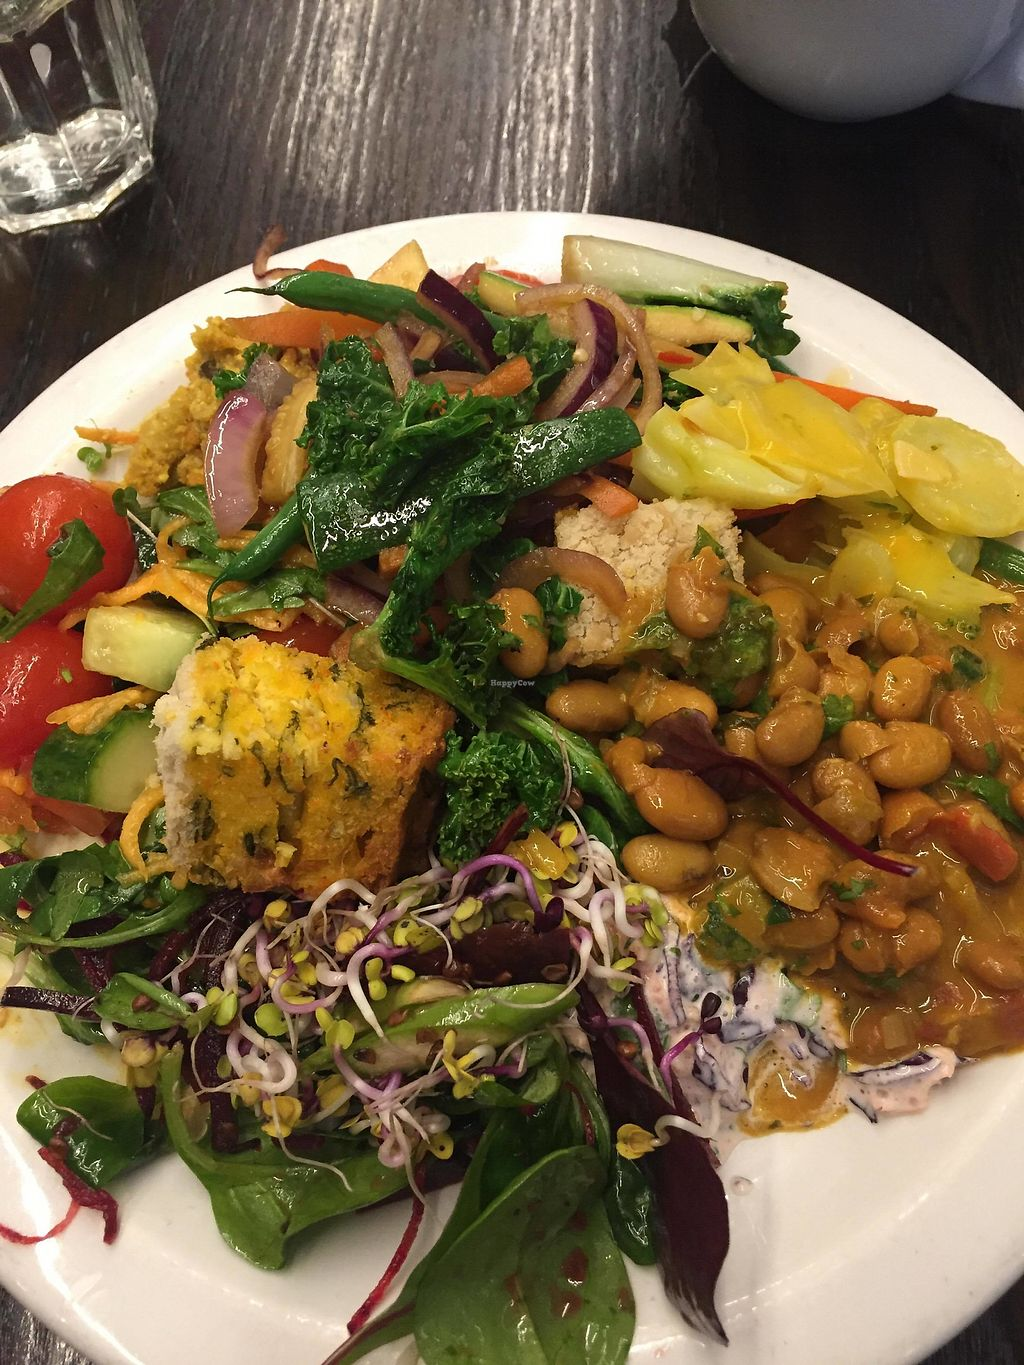 "Photo of 222 Vegan Cuisine  by <a href=""/members/profile/Yasminesan"">Yasminesan</a> <br/>Buffet plate <br/> January 29, 2018  - <a href='/contact/abuse/image/4655/352517'>Report</a>"